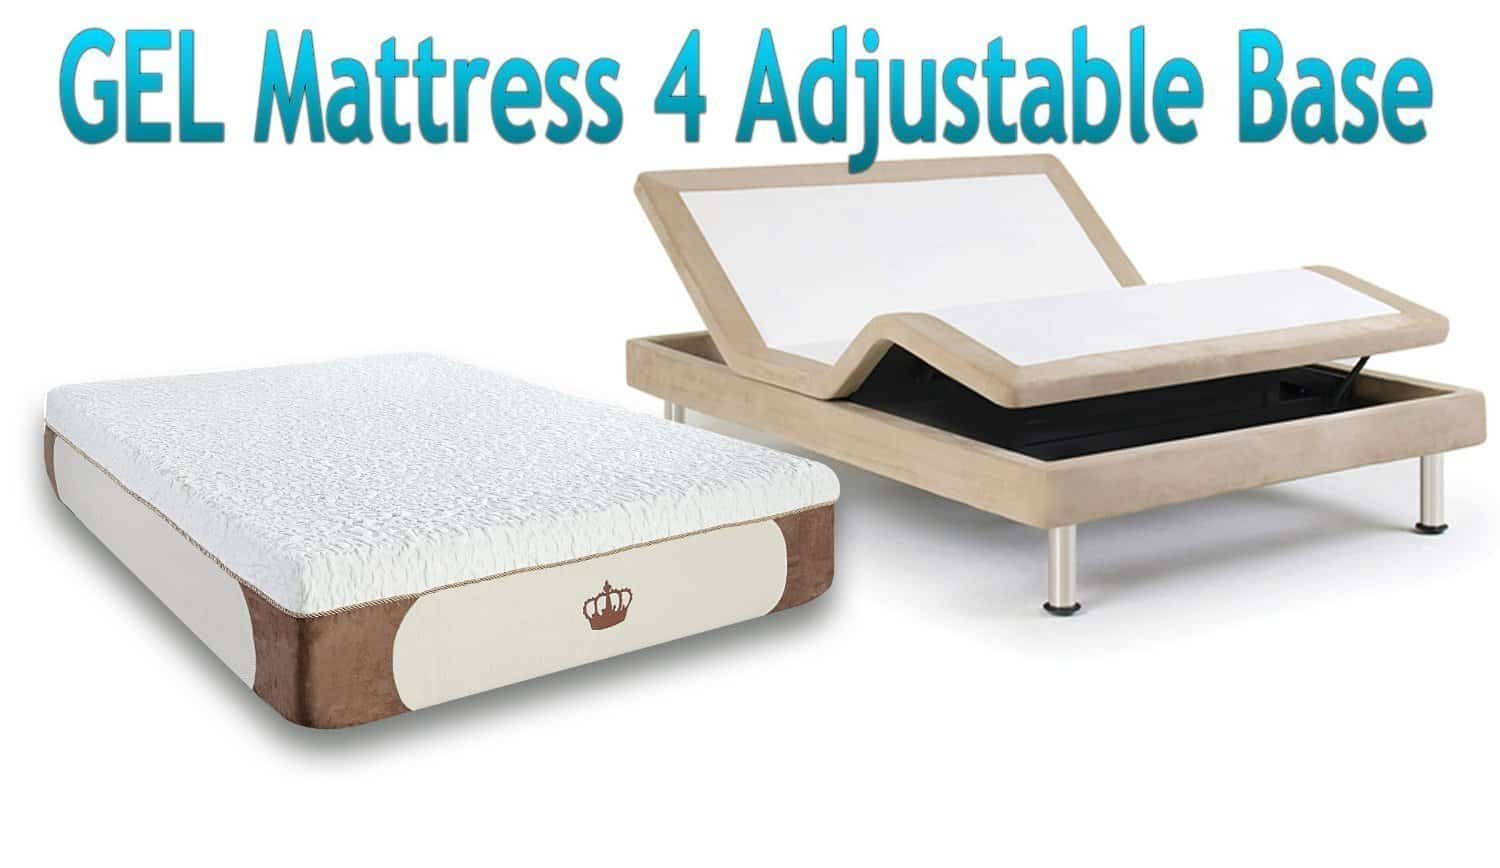 the DynastyMattress Cool Breeze shown on an adjustable base